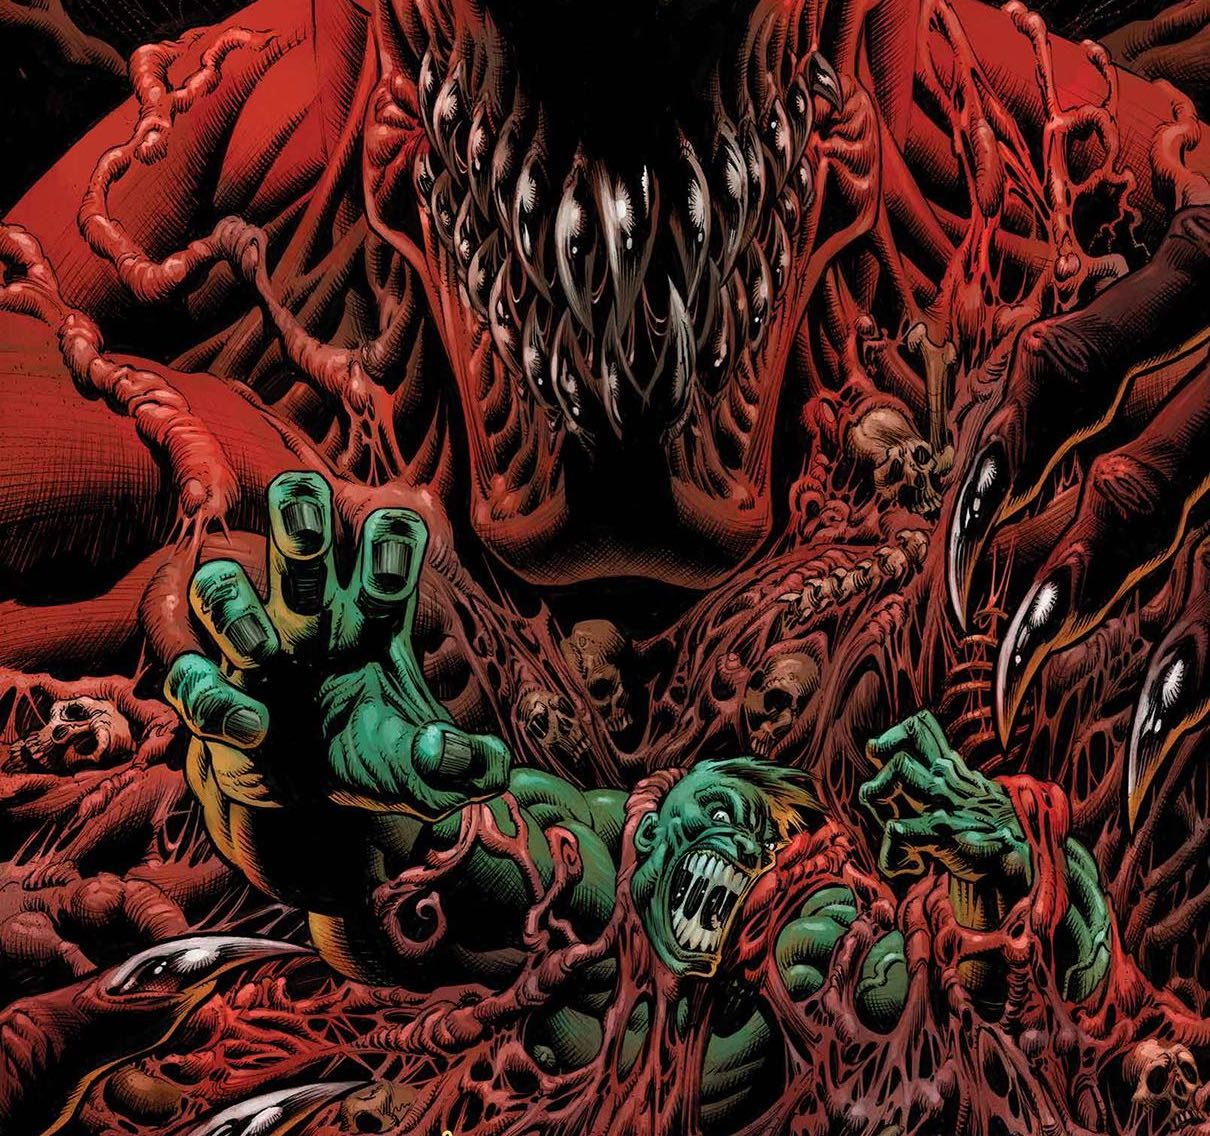 EXCLUSIVE Marvel Preview: Absolute Carnage: Immortal Hulk #1